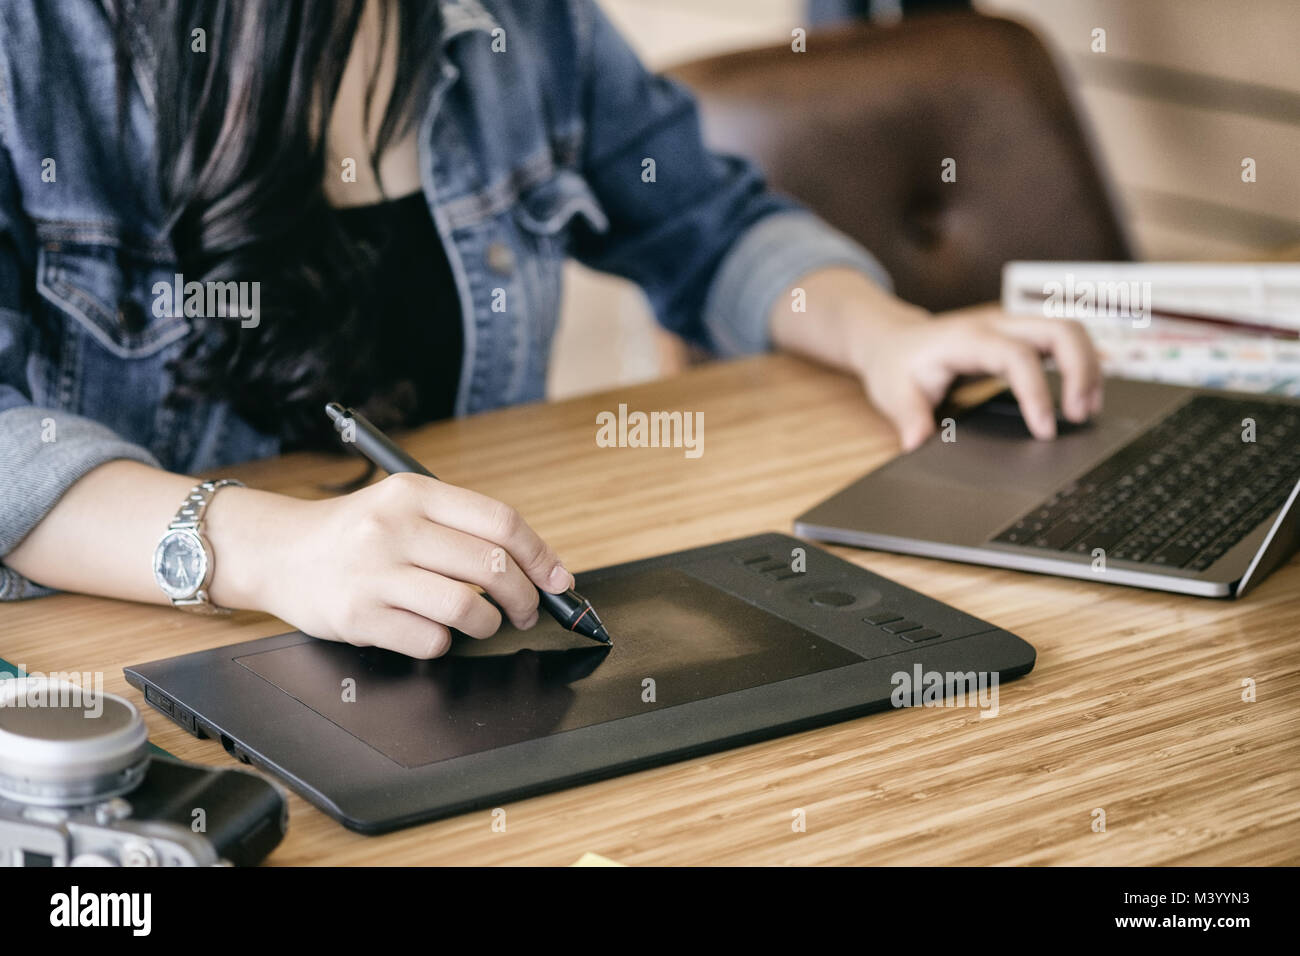 Freelance graphic designer working with mouse pen and computer on creative office. - Stock Image